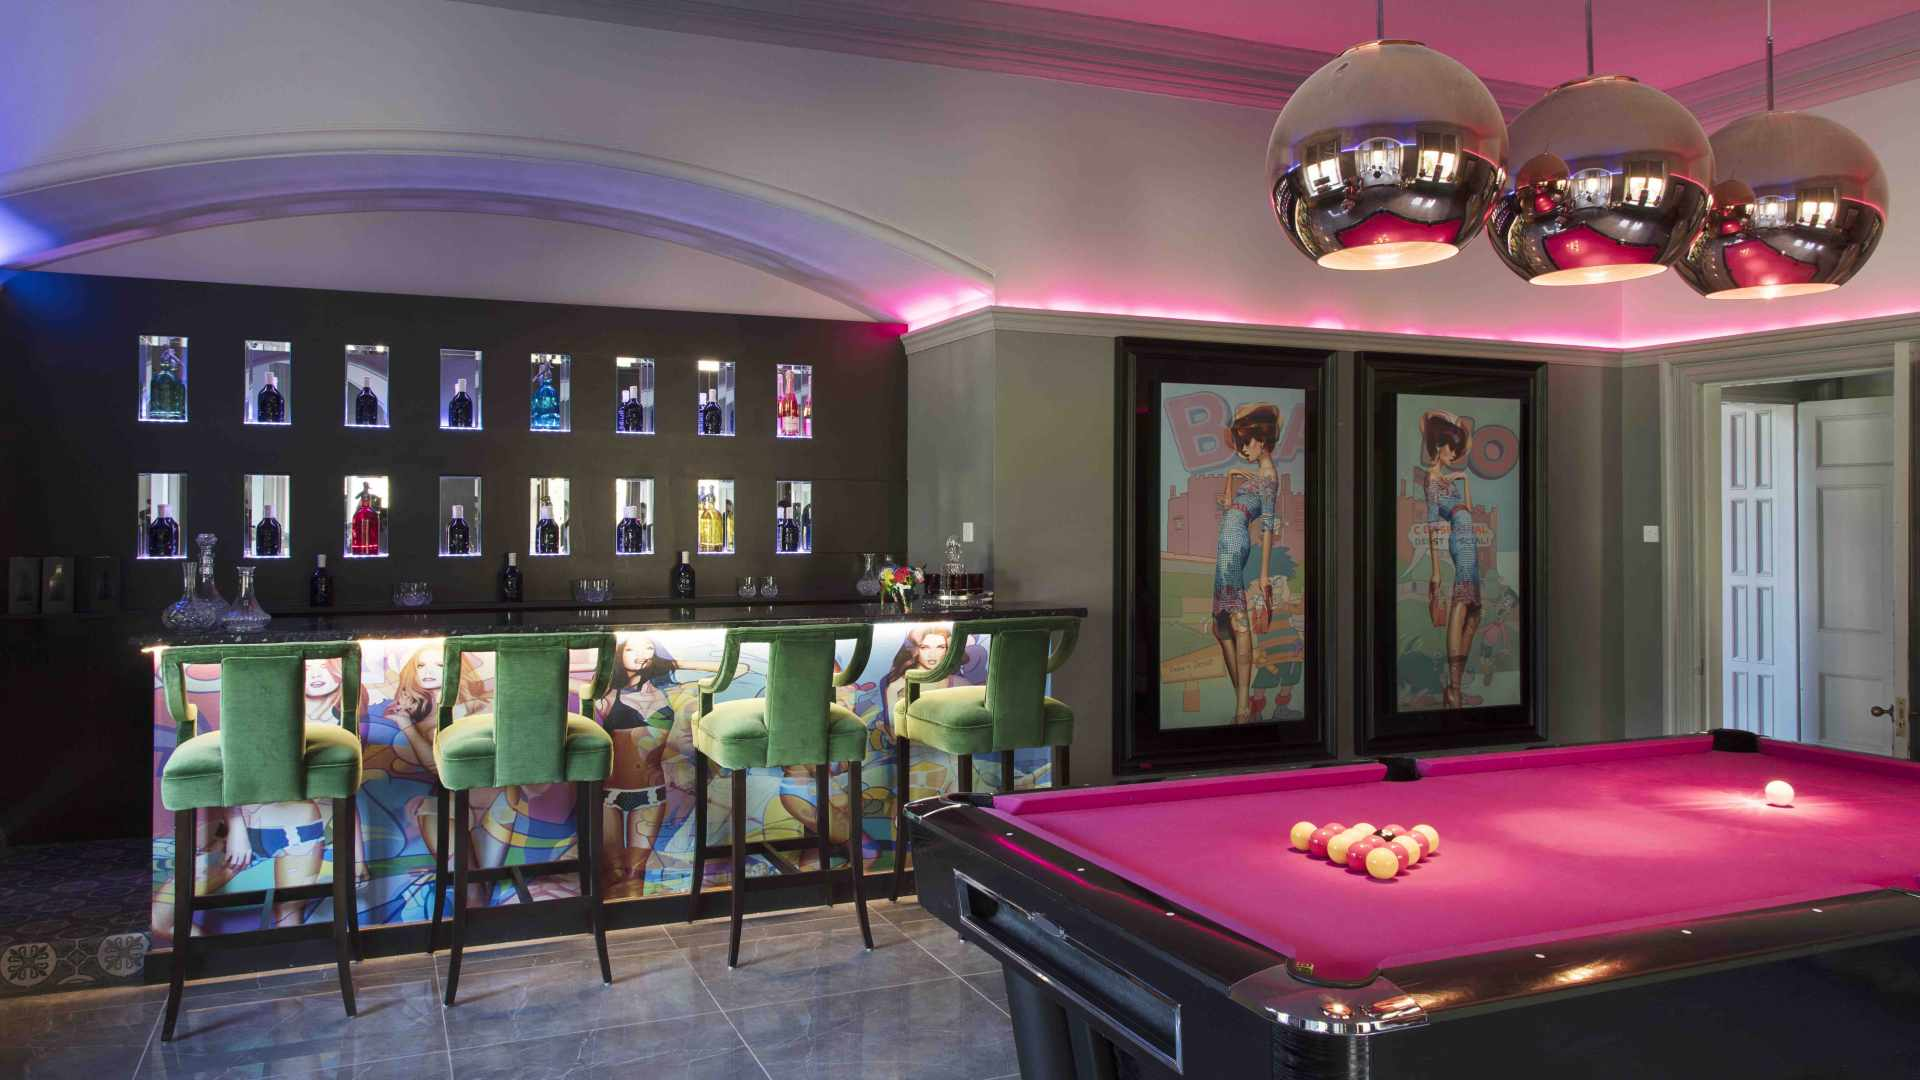 Lots of enormous fun can be had around the pool table and by the bar